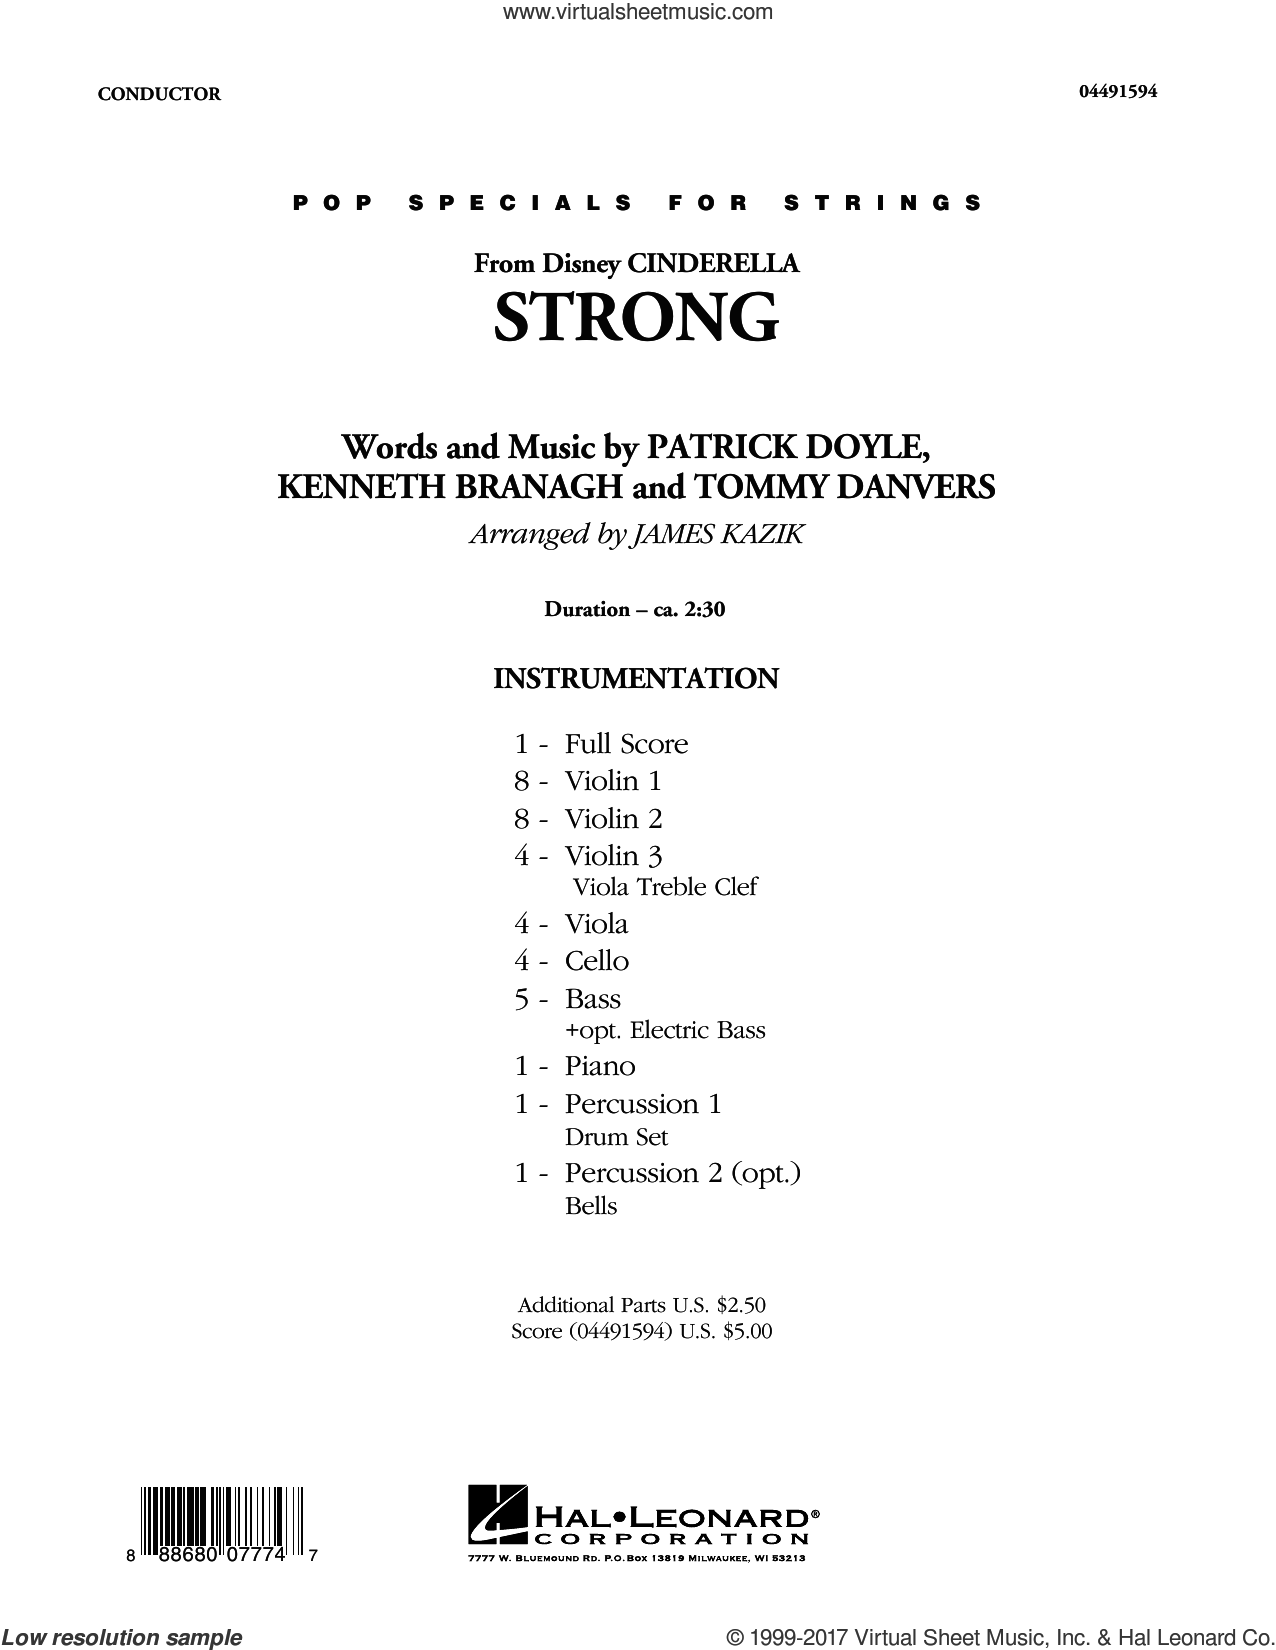 Strong (from Disney's Cinderella) (COMPLETE) sheet music for orchestra by Patrick Doyle, James Kazik, Kenneth Branagh, Sonna Rele and Tommy Danvers, intermediate